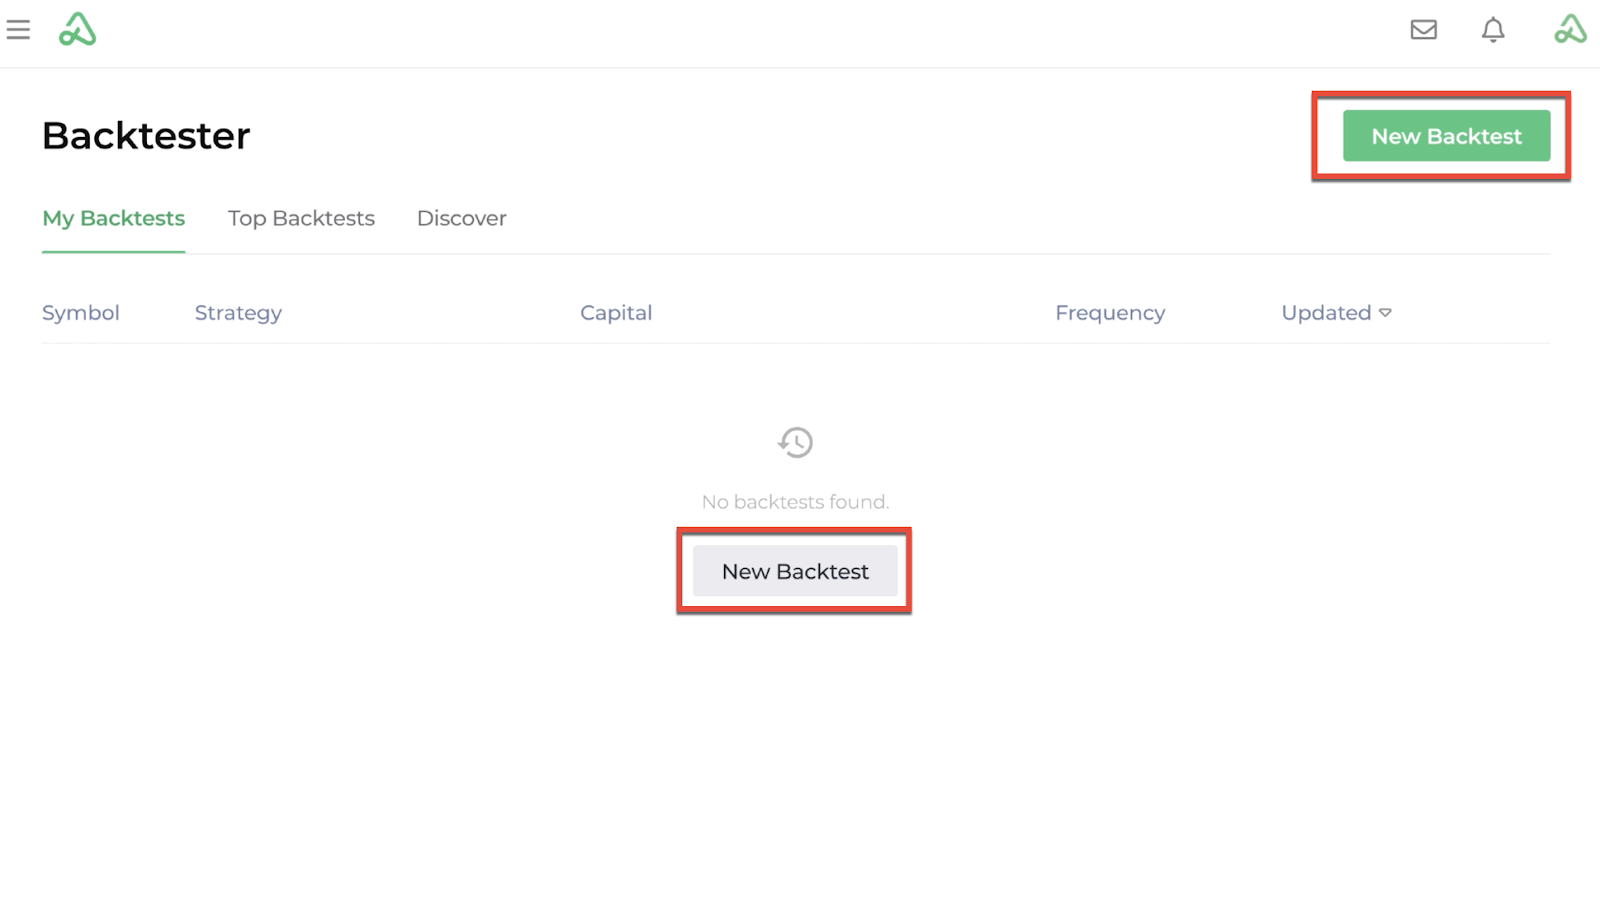 Screenshot of the backtester homepage with new backtest highlighted